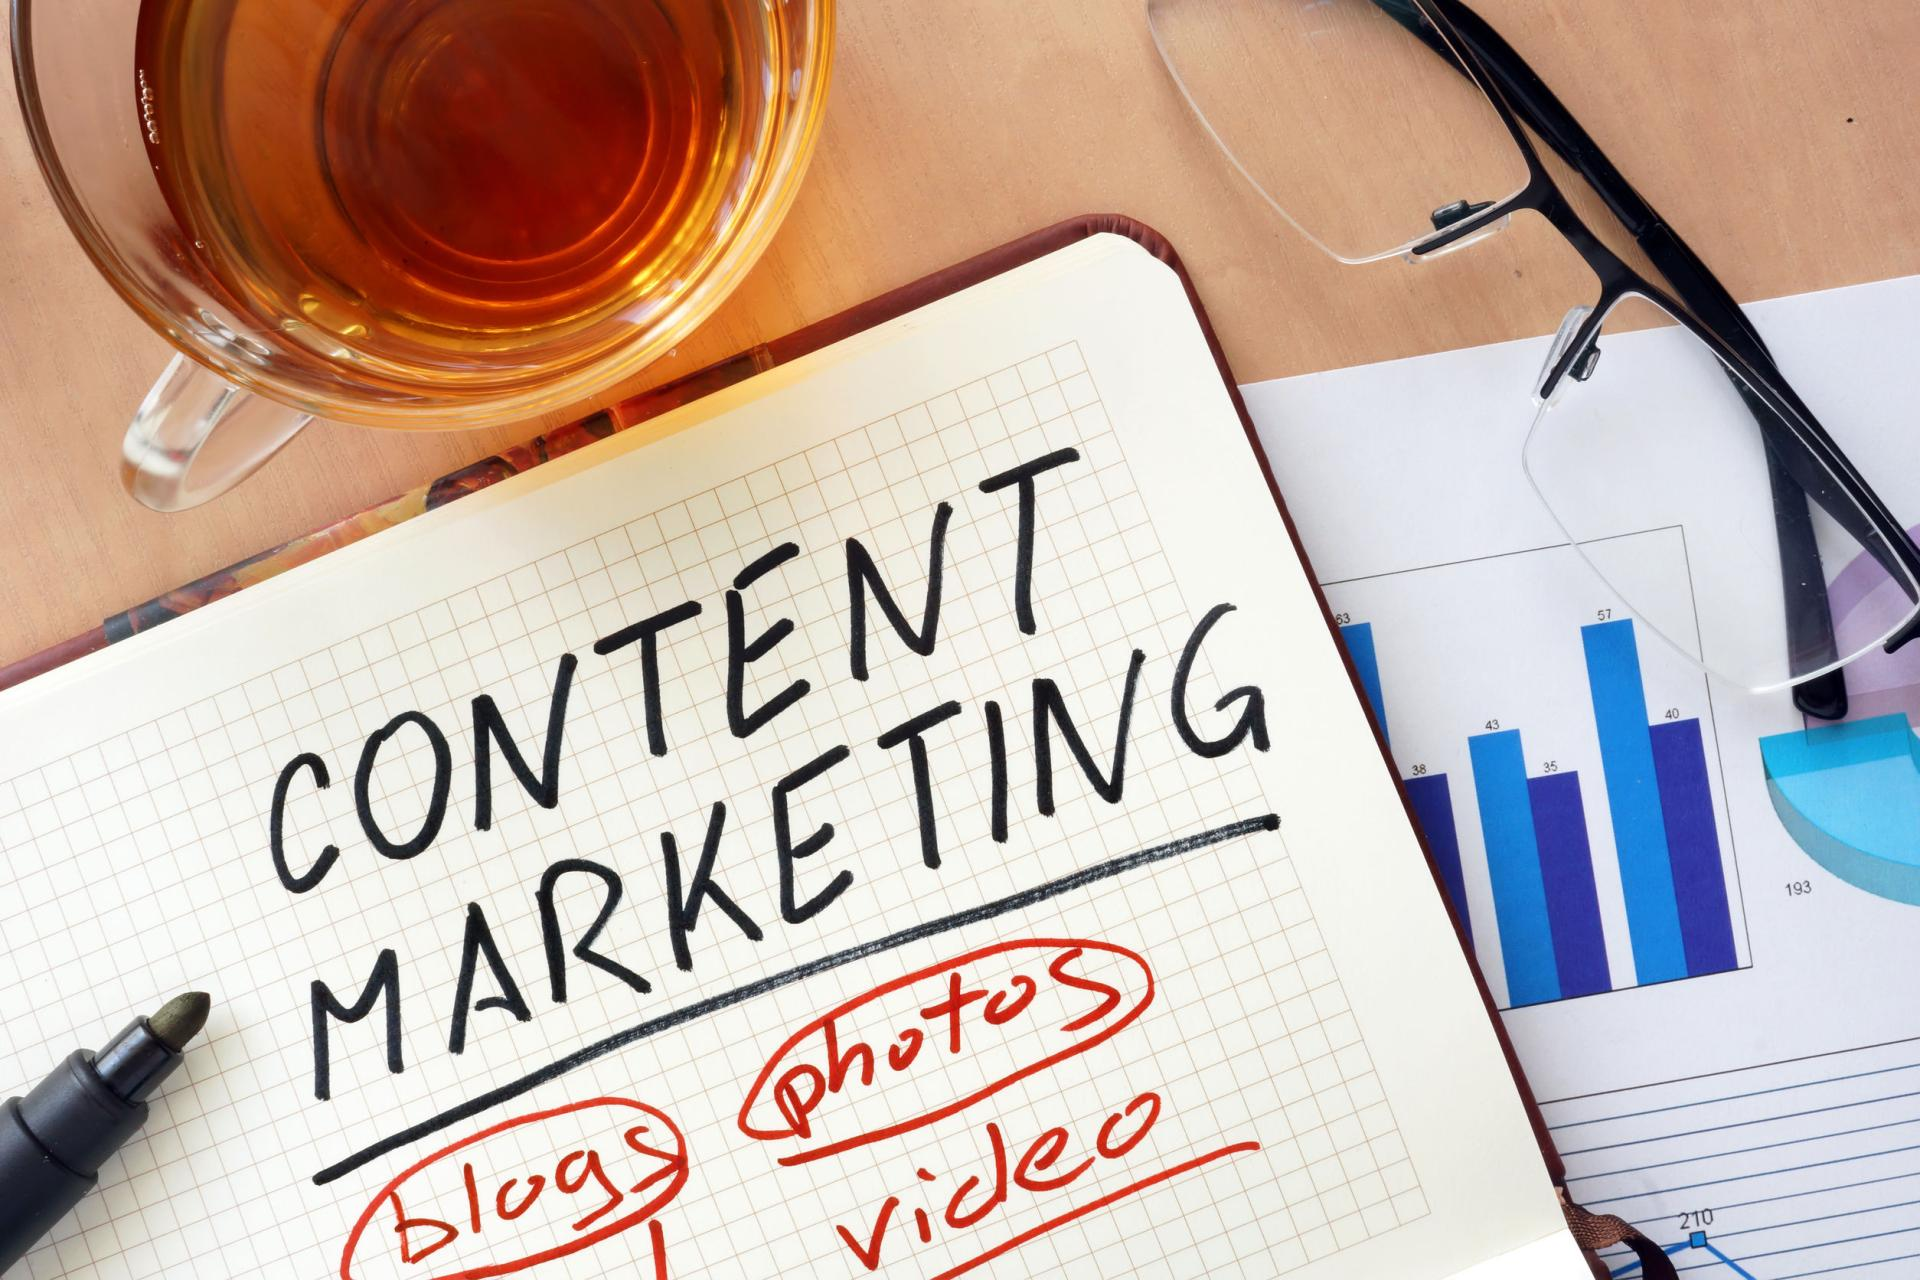 content marketing in a notebook with blogs photos and video written on it that represents how not to create mistakes in content marketing